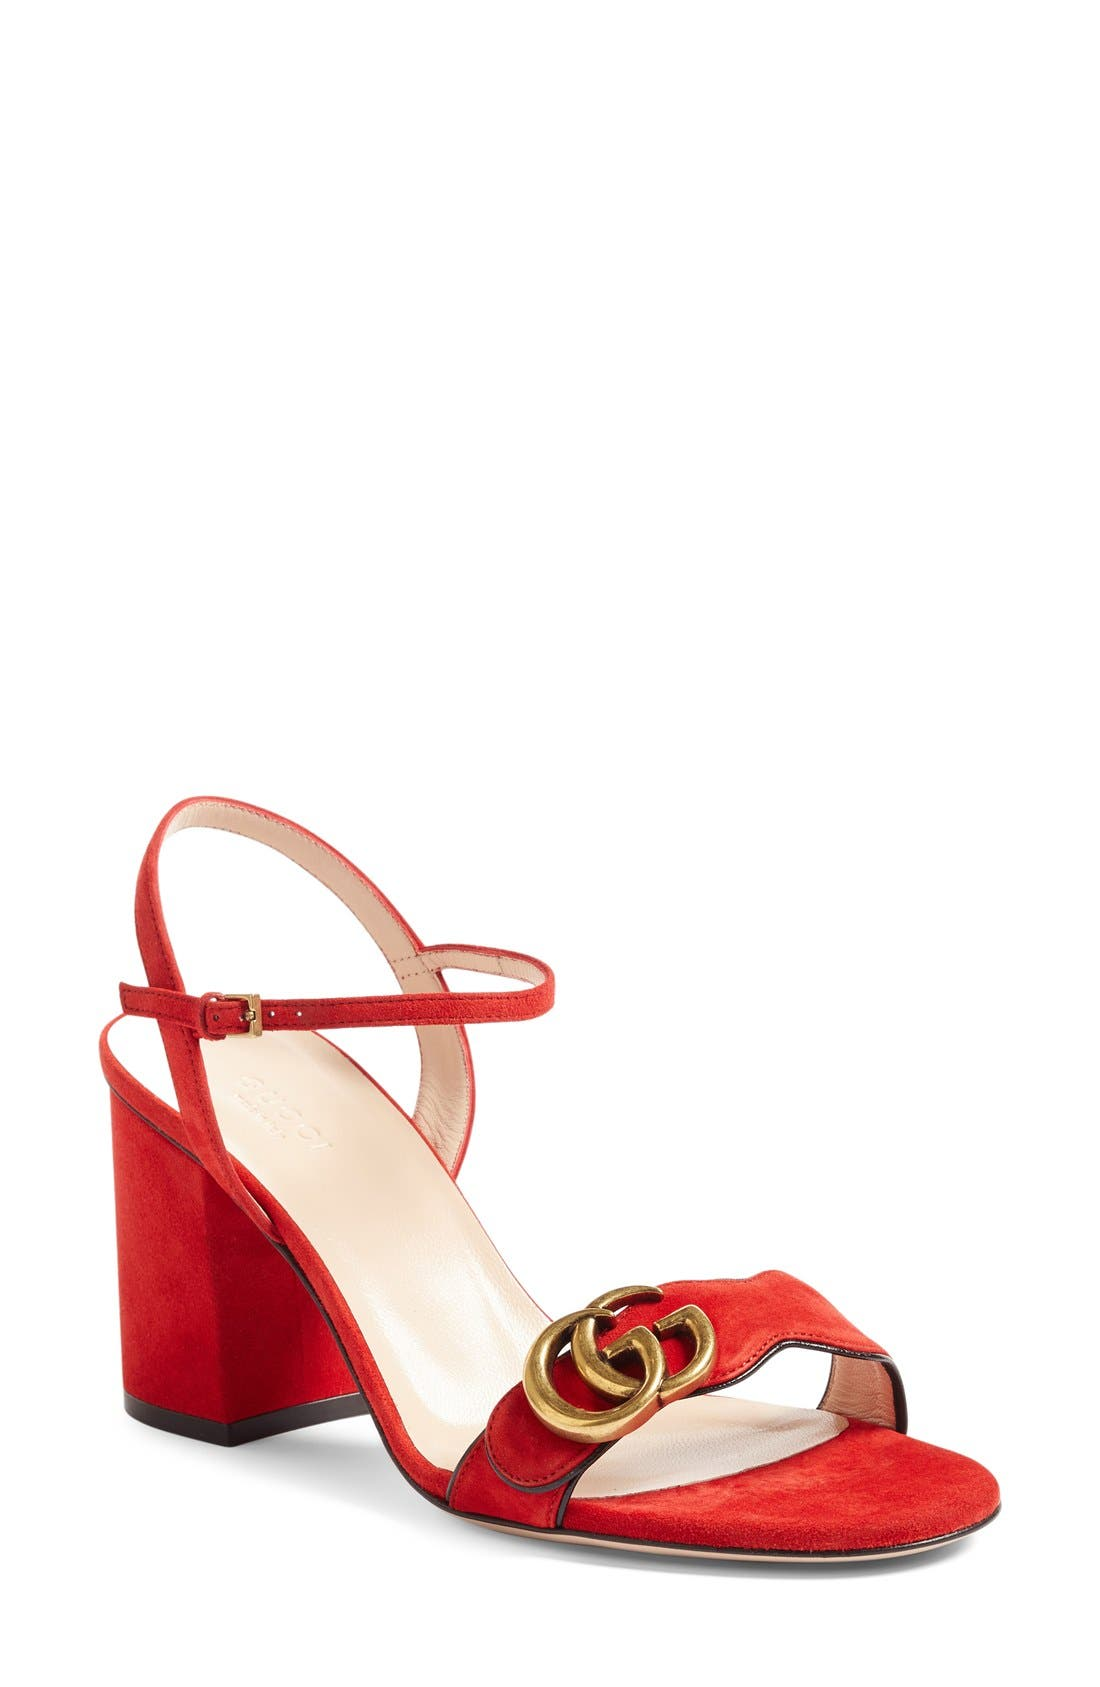 GG Marmont Sandal,                         Main,                         color, Red Suede